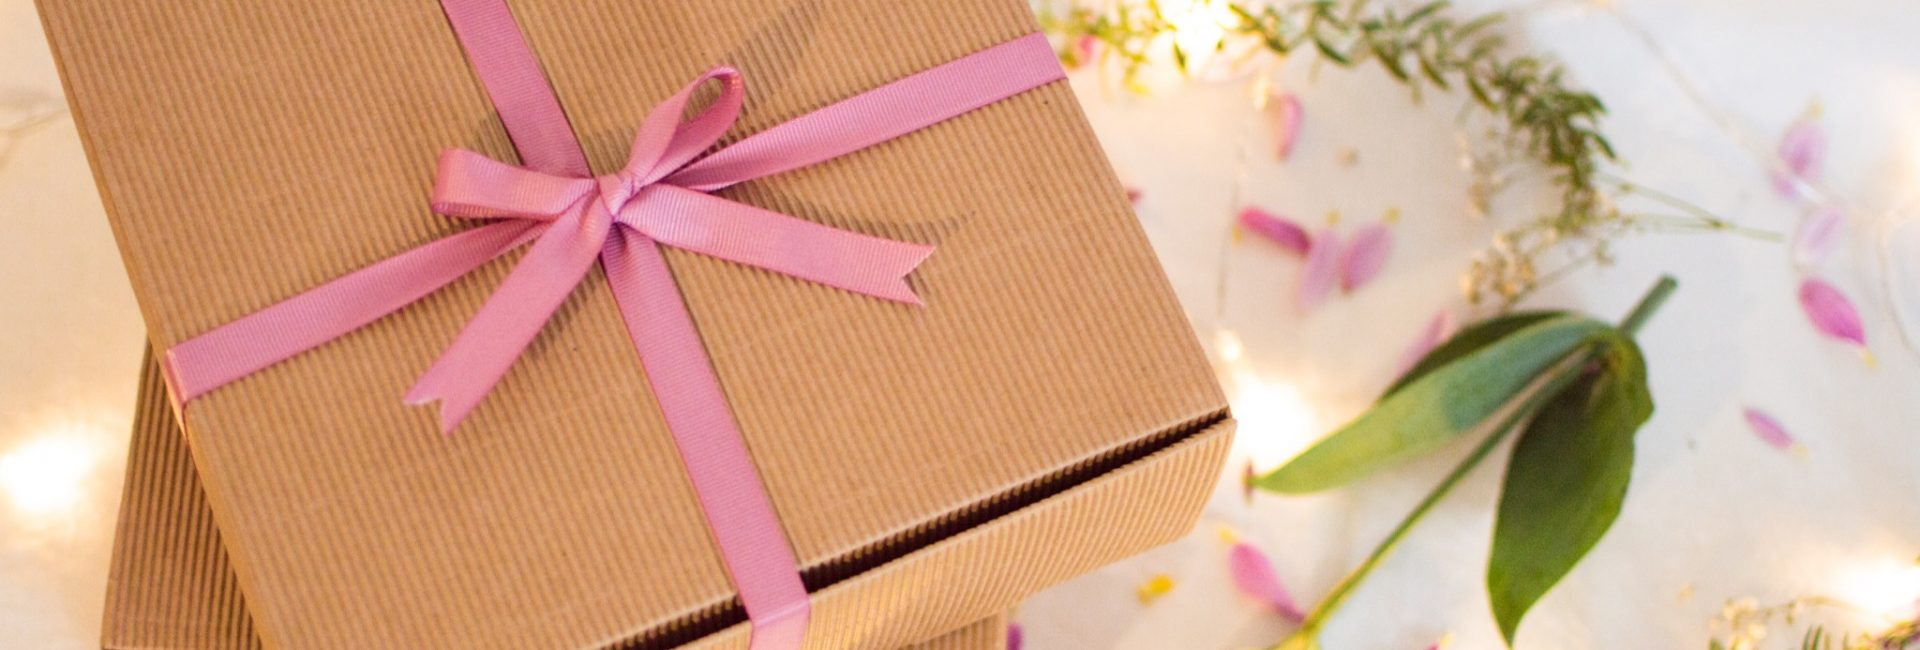 A wonderful lifestyle gift box for pregnancy and motherhood!